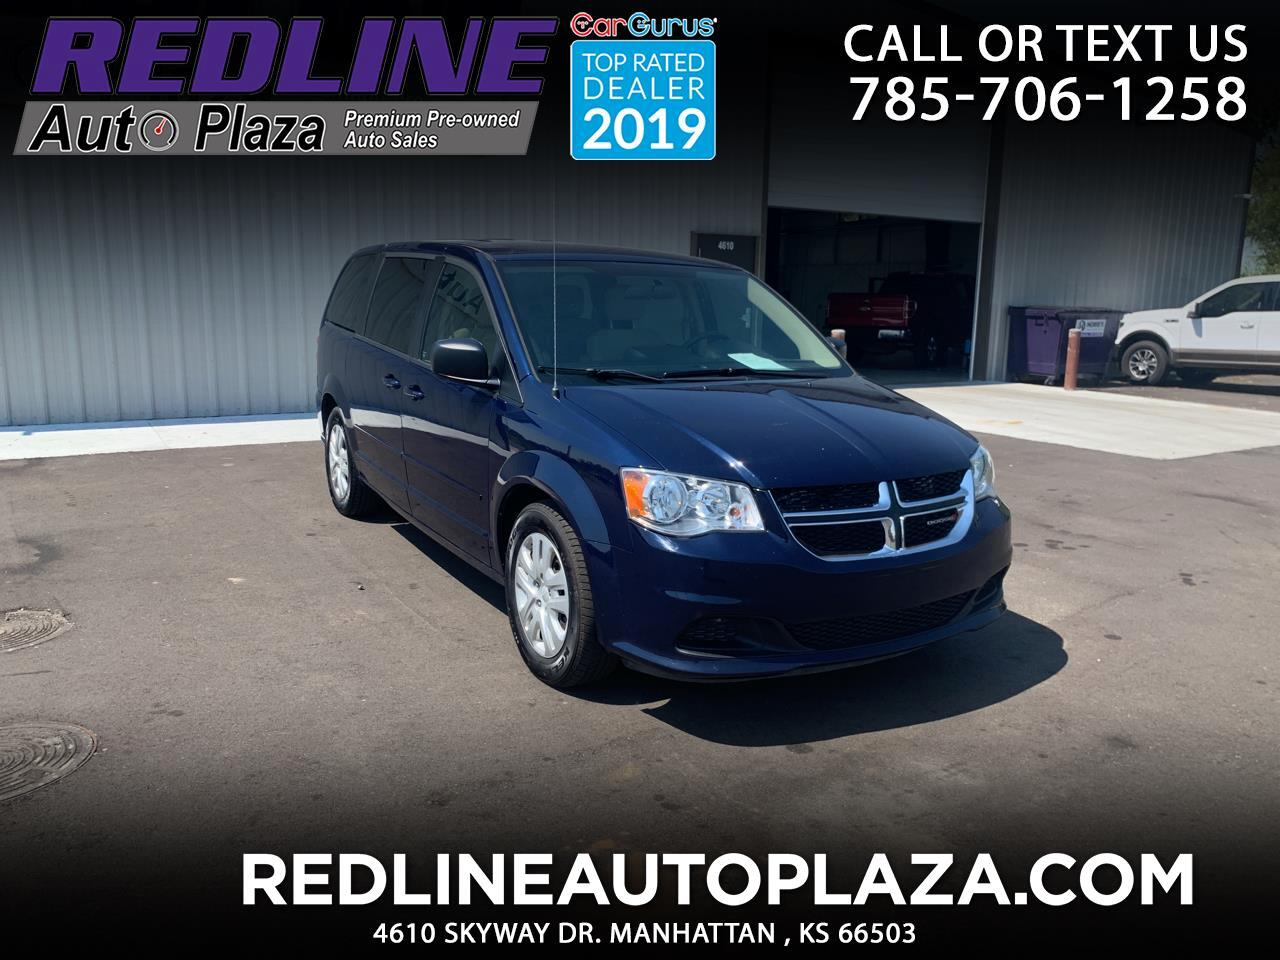 Dodge Grand Caravan 4dr Wgn SE 2016